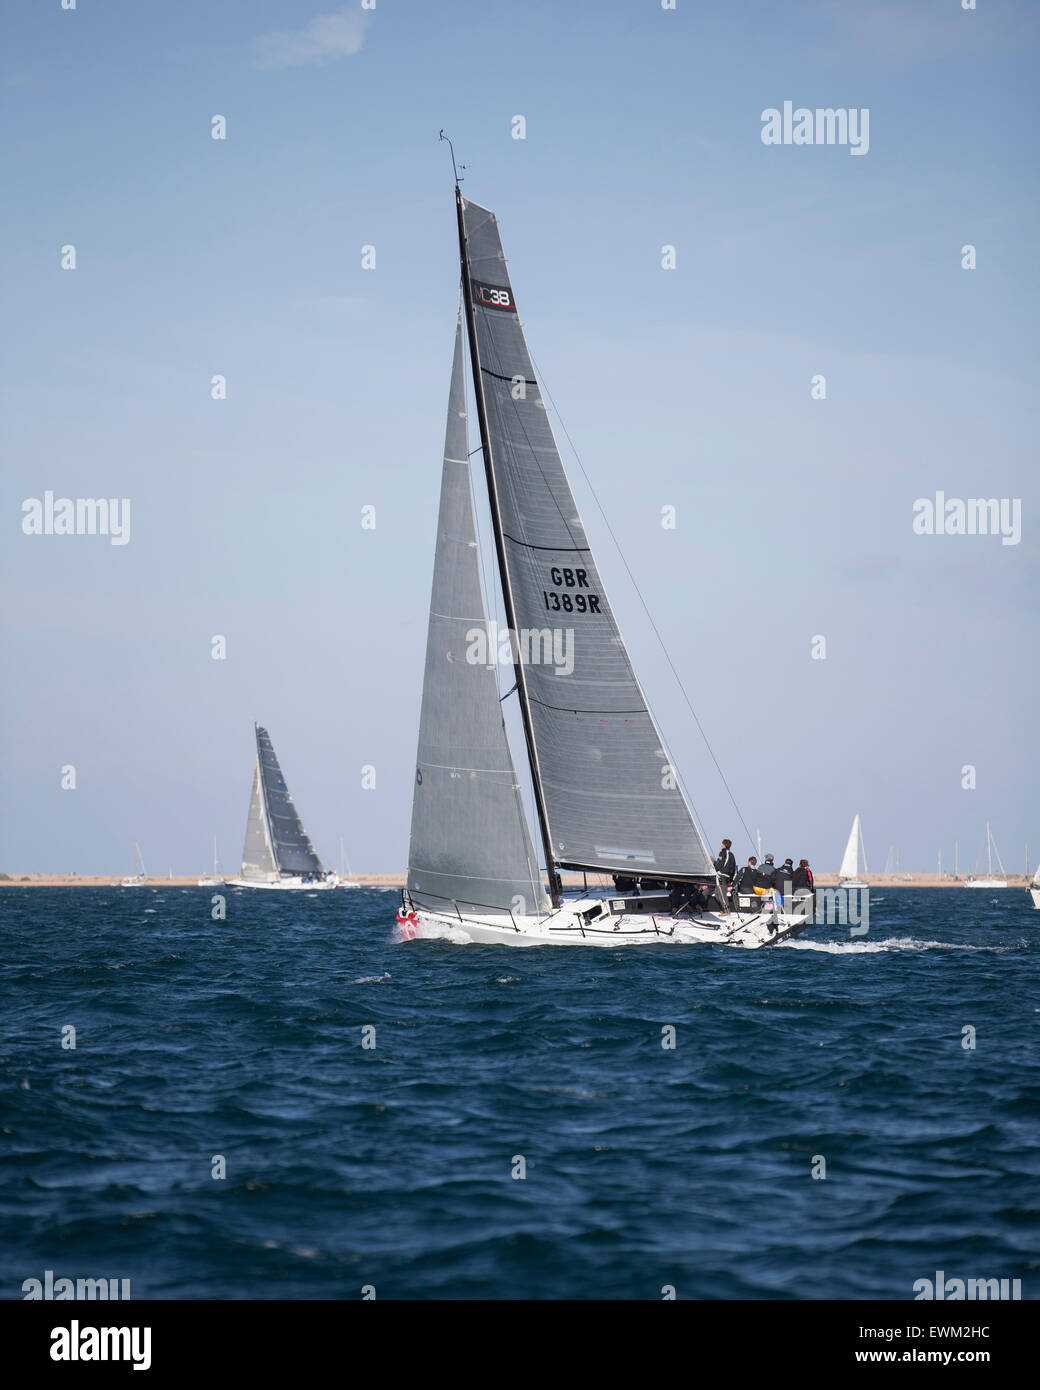 UK. 27th June, 2015. Maconachy 38 GBR 1389R 'Jubilee' taking part in the 2015 Round the Island Race Credit: - Stock Image